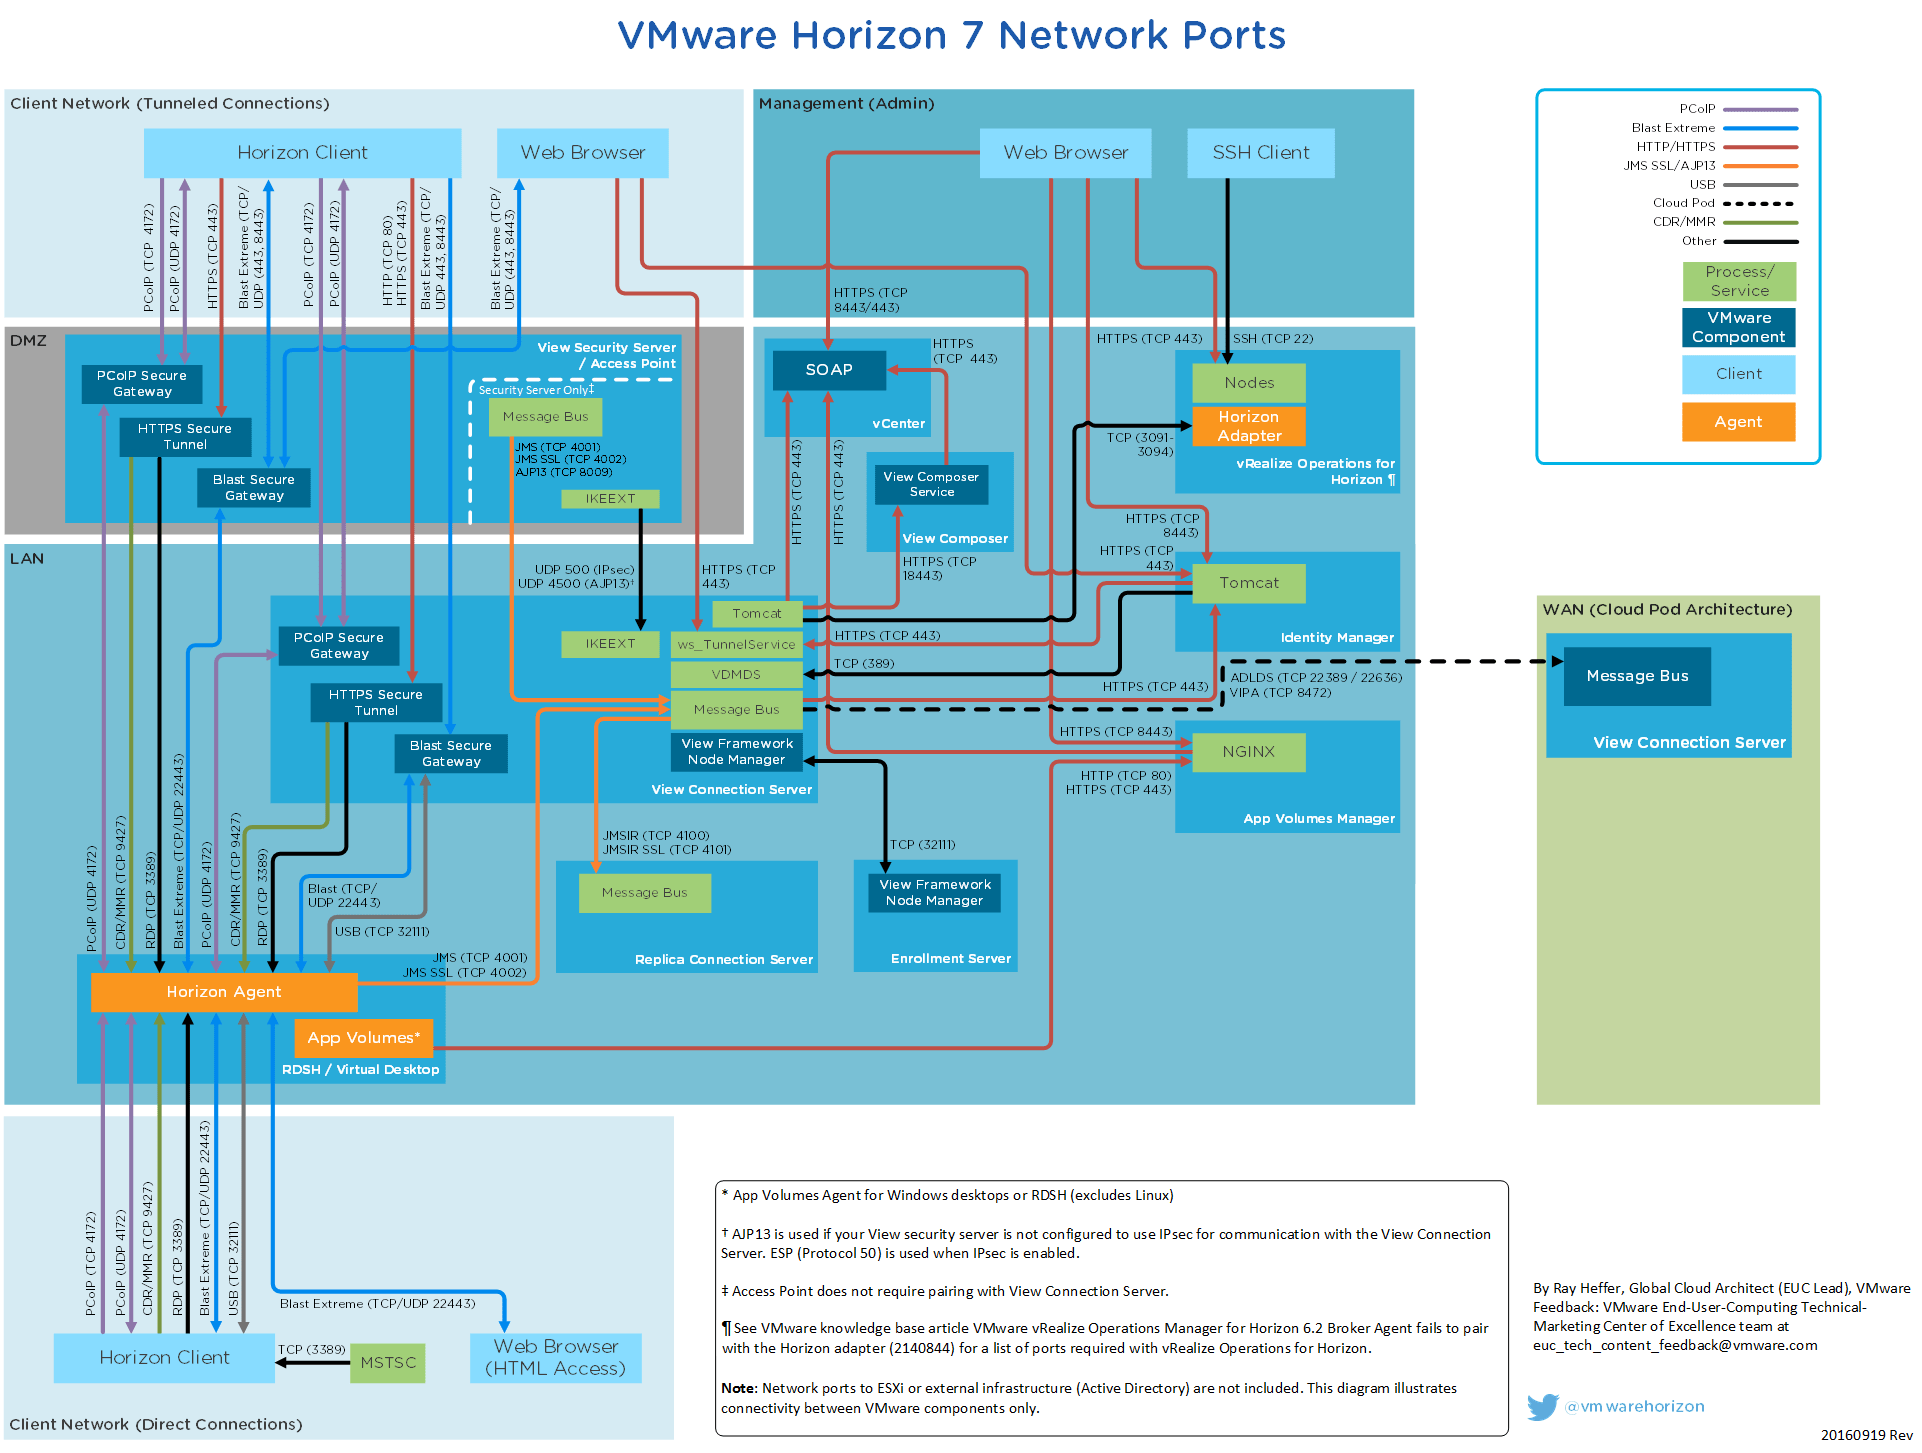 hight resolution of network ports in horizon 7 diagram updated vmware end user diagram of laptop ports network port diagram